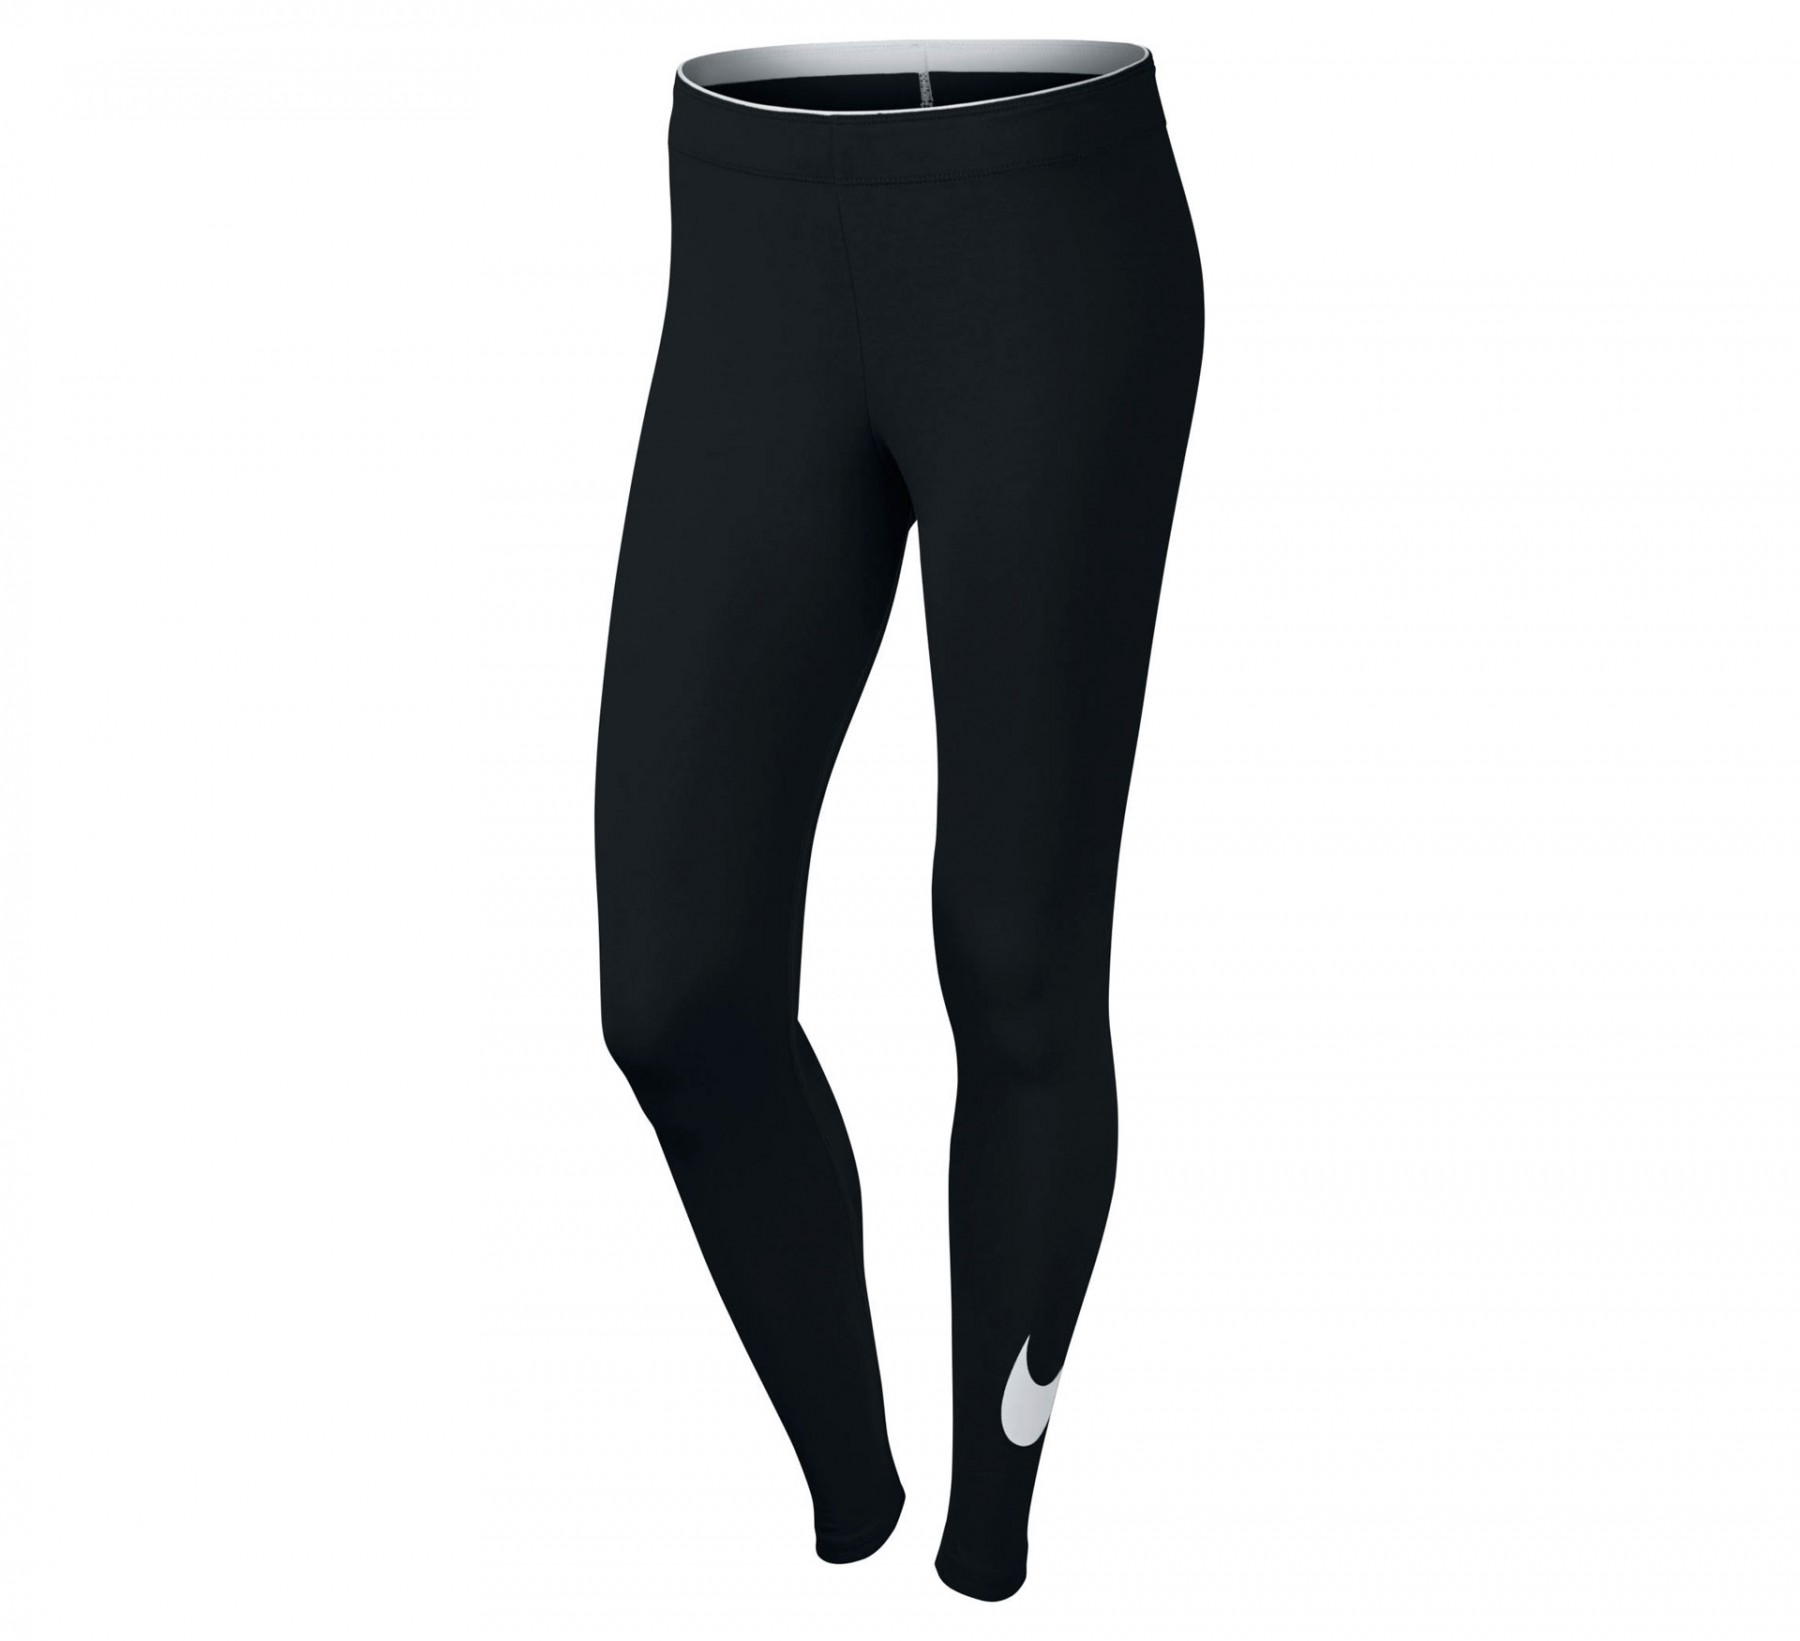 Nike Women's Swoosh Leggings - Black